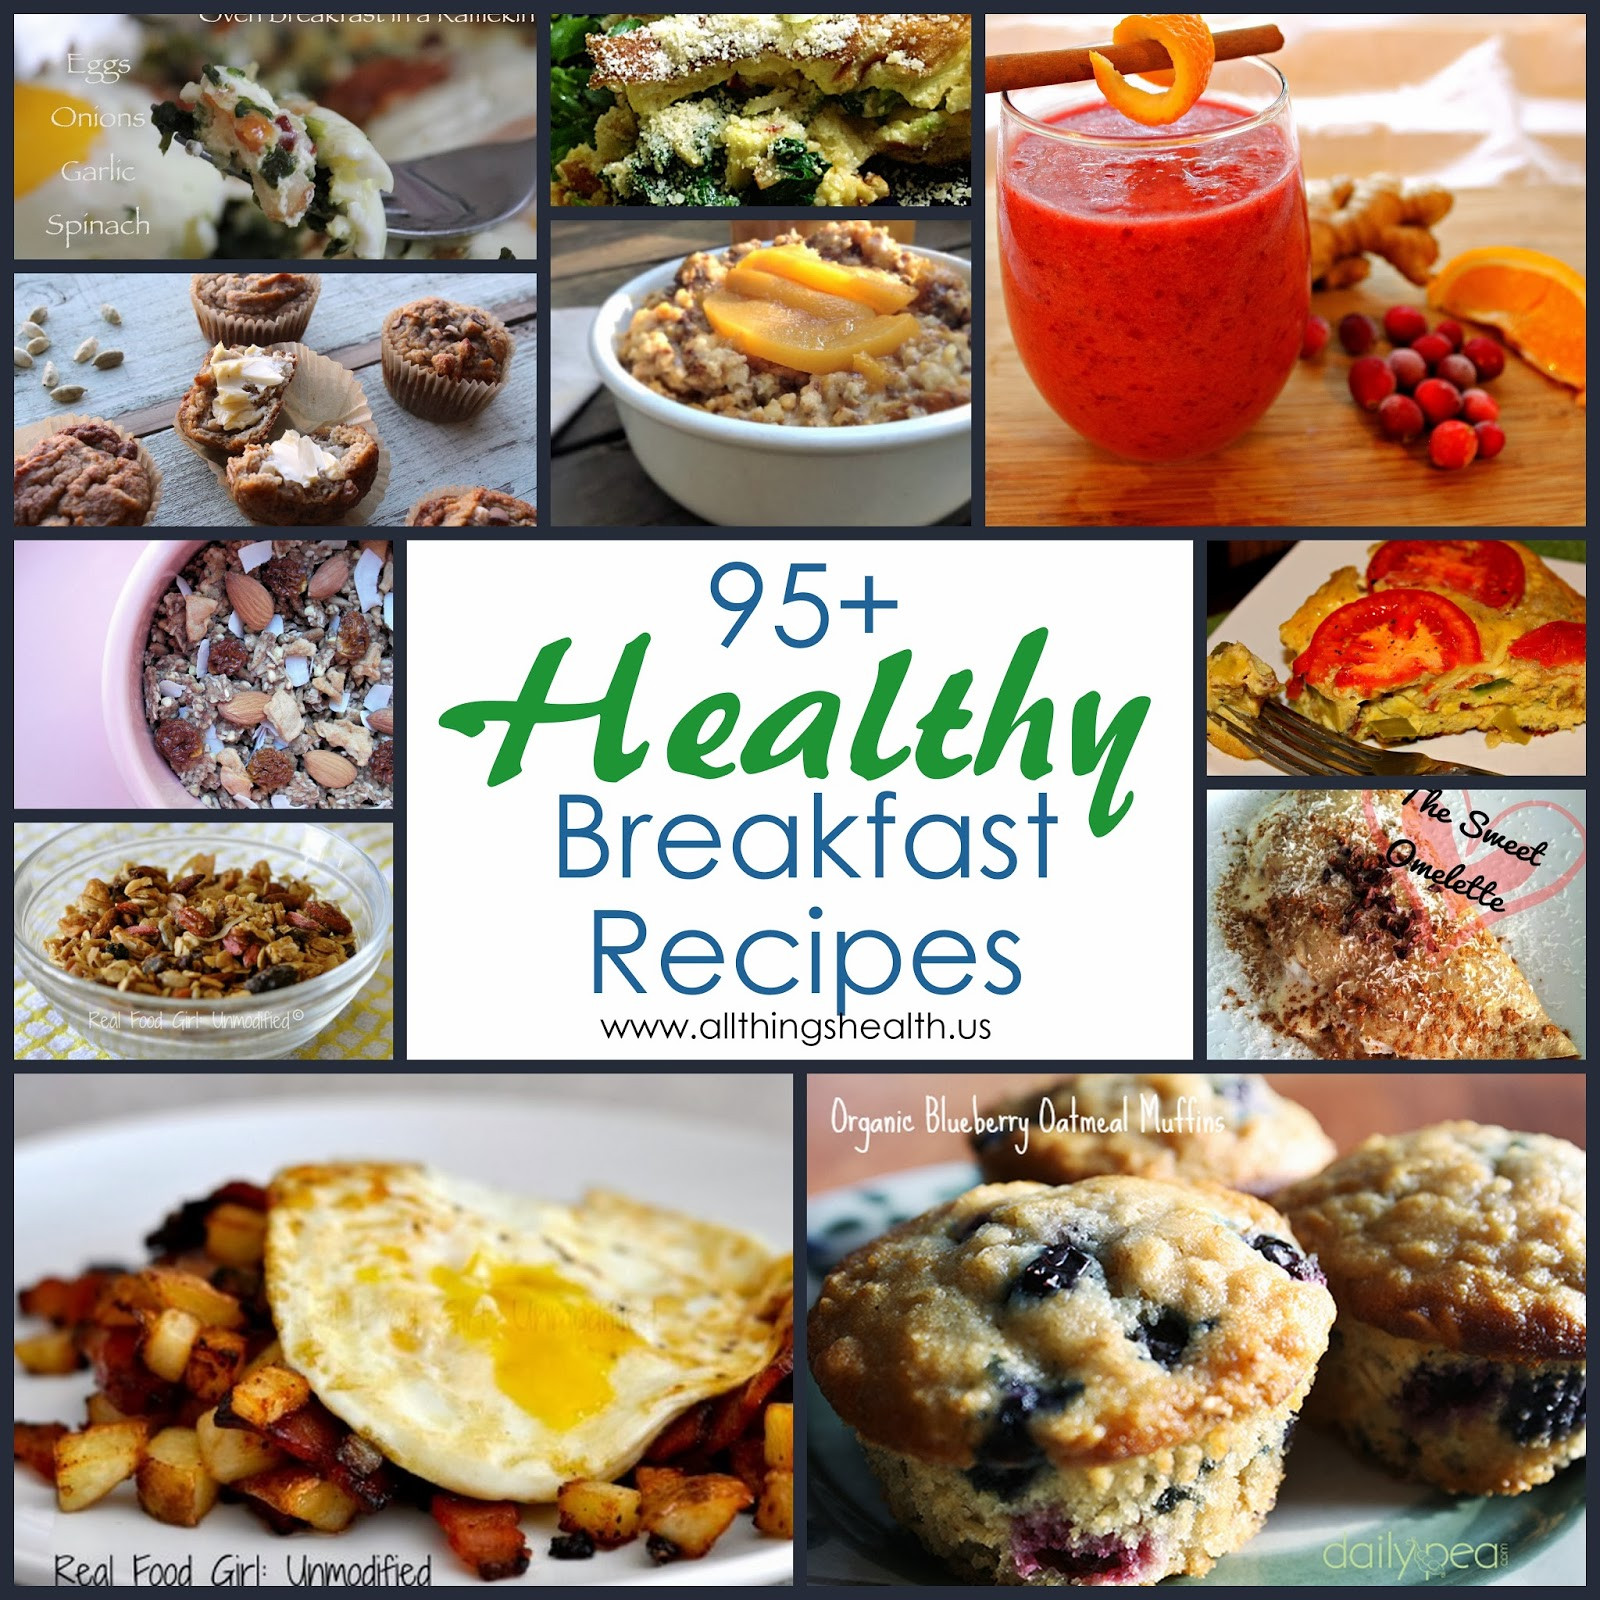 Breakfast Recipes Healthy  All Things Health 95 Healthy Breakfast Recipes